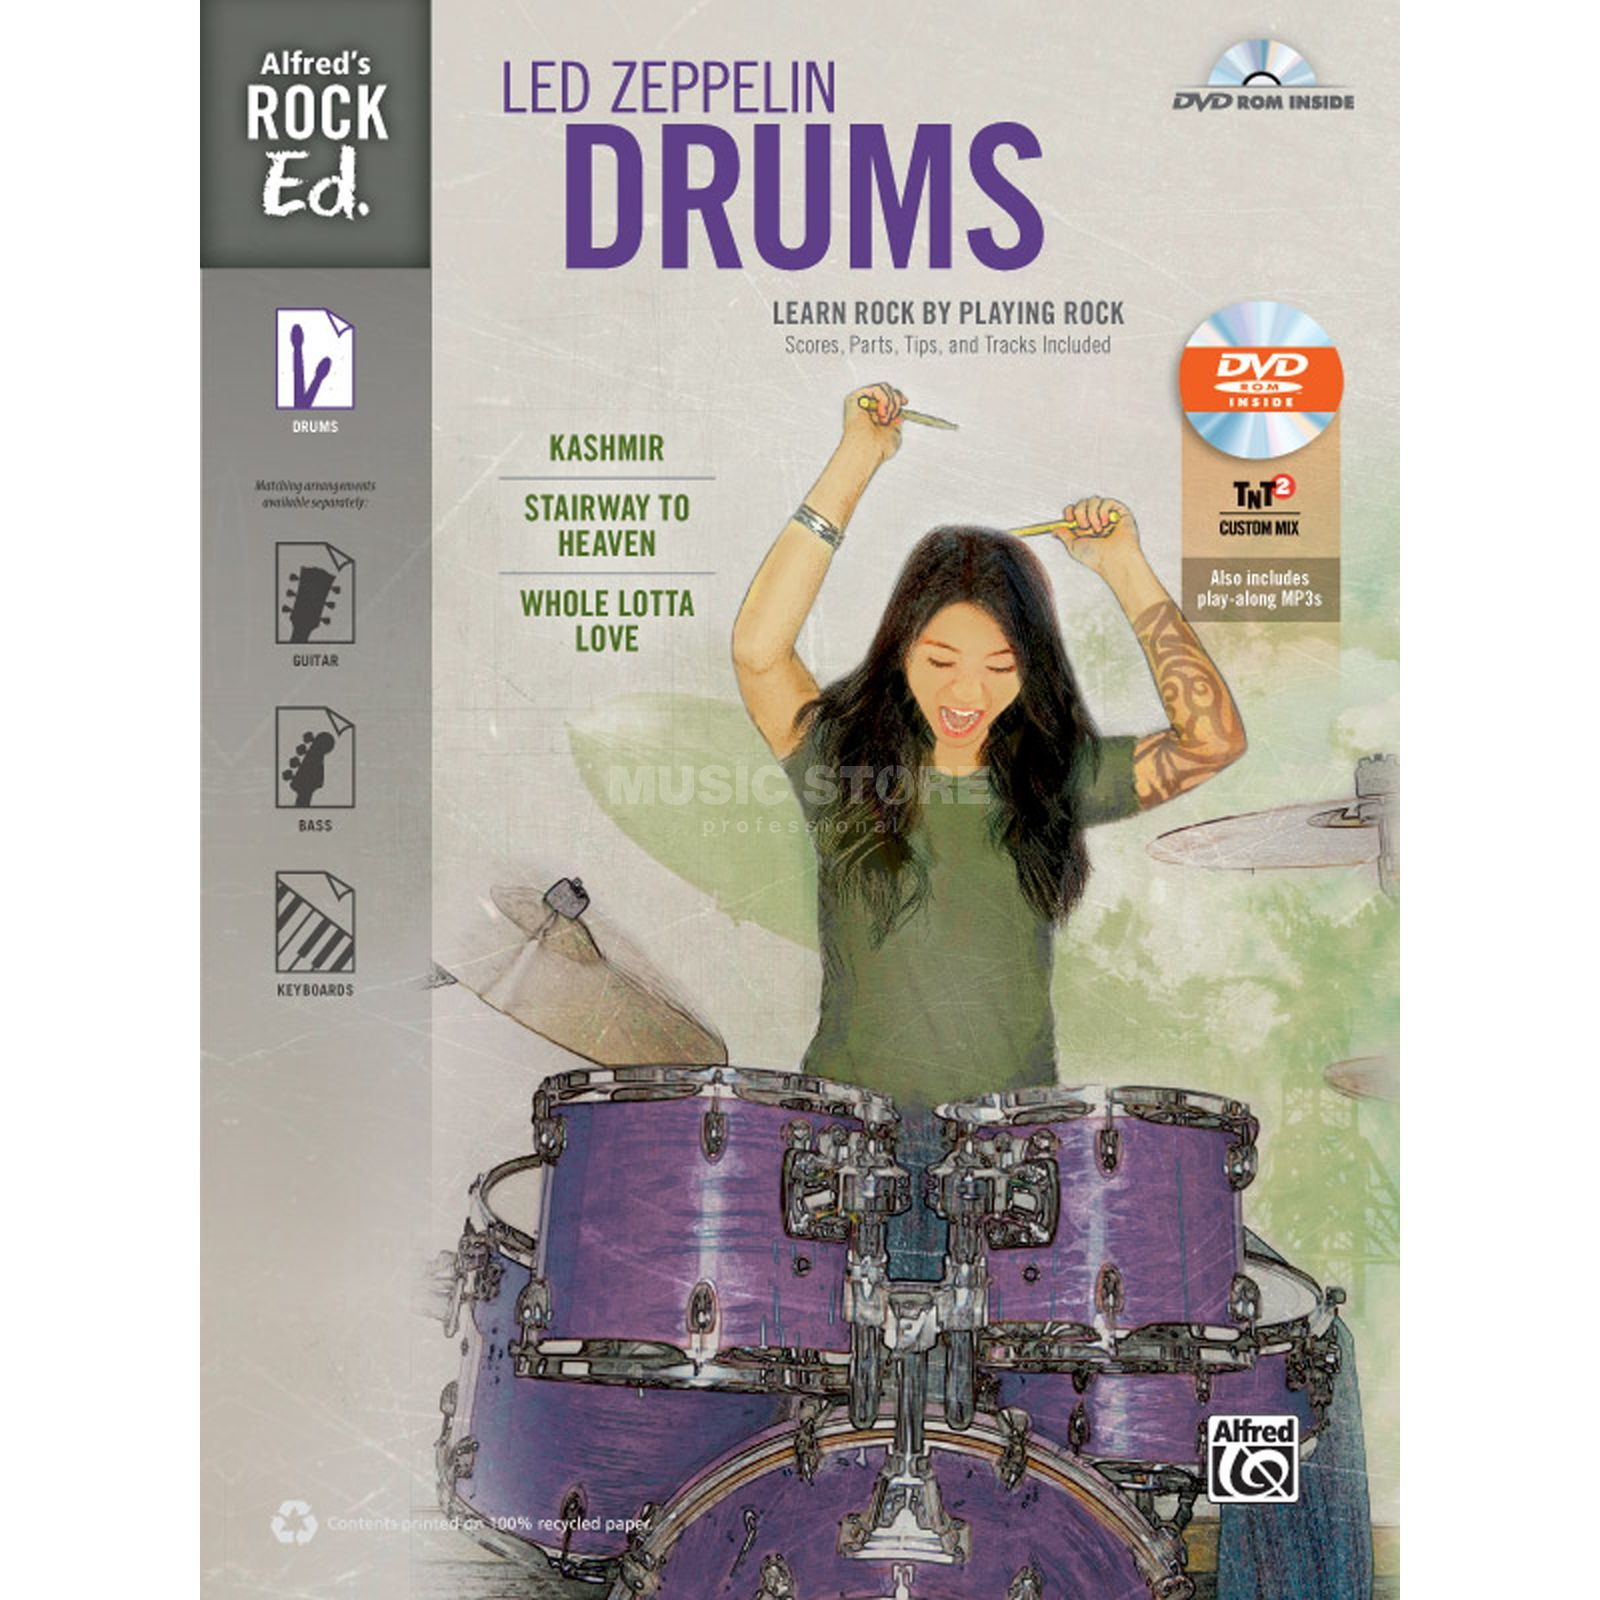 Alfred Music Rock Ed.: Led Zeppelin Drums Produktbild